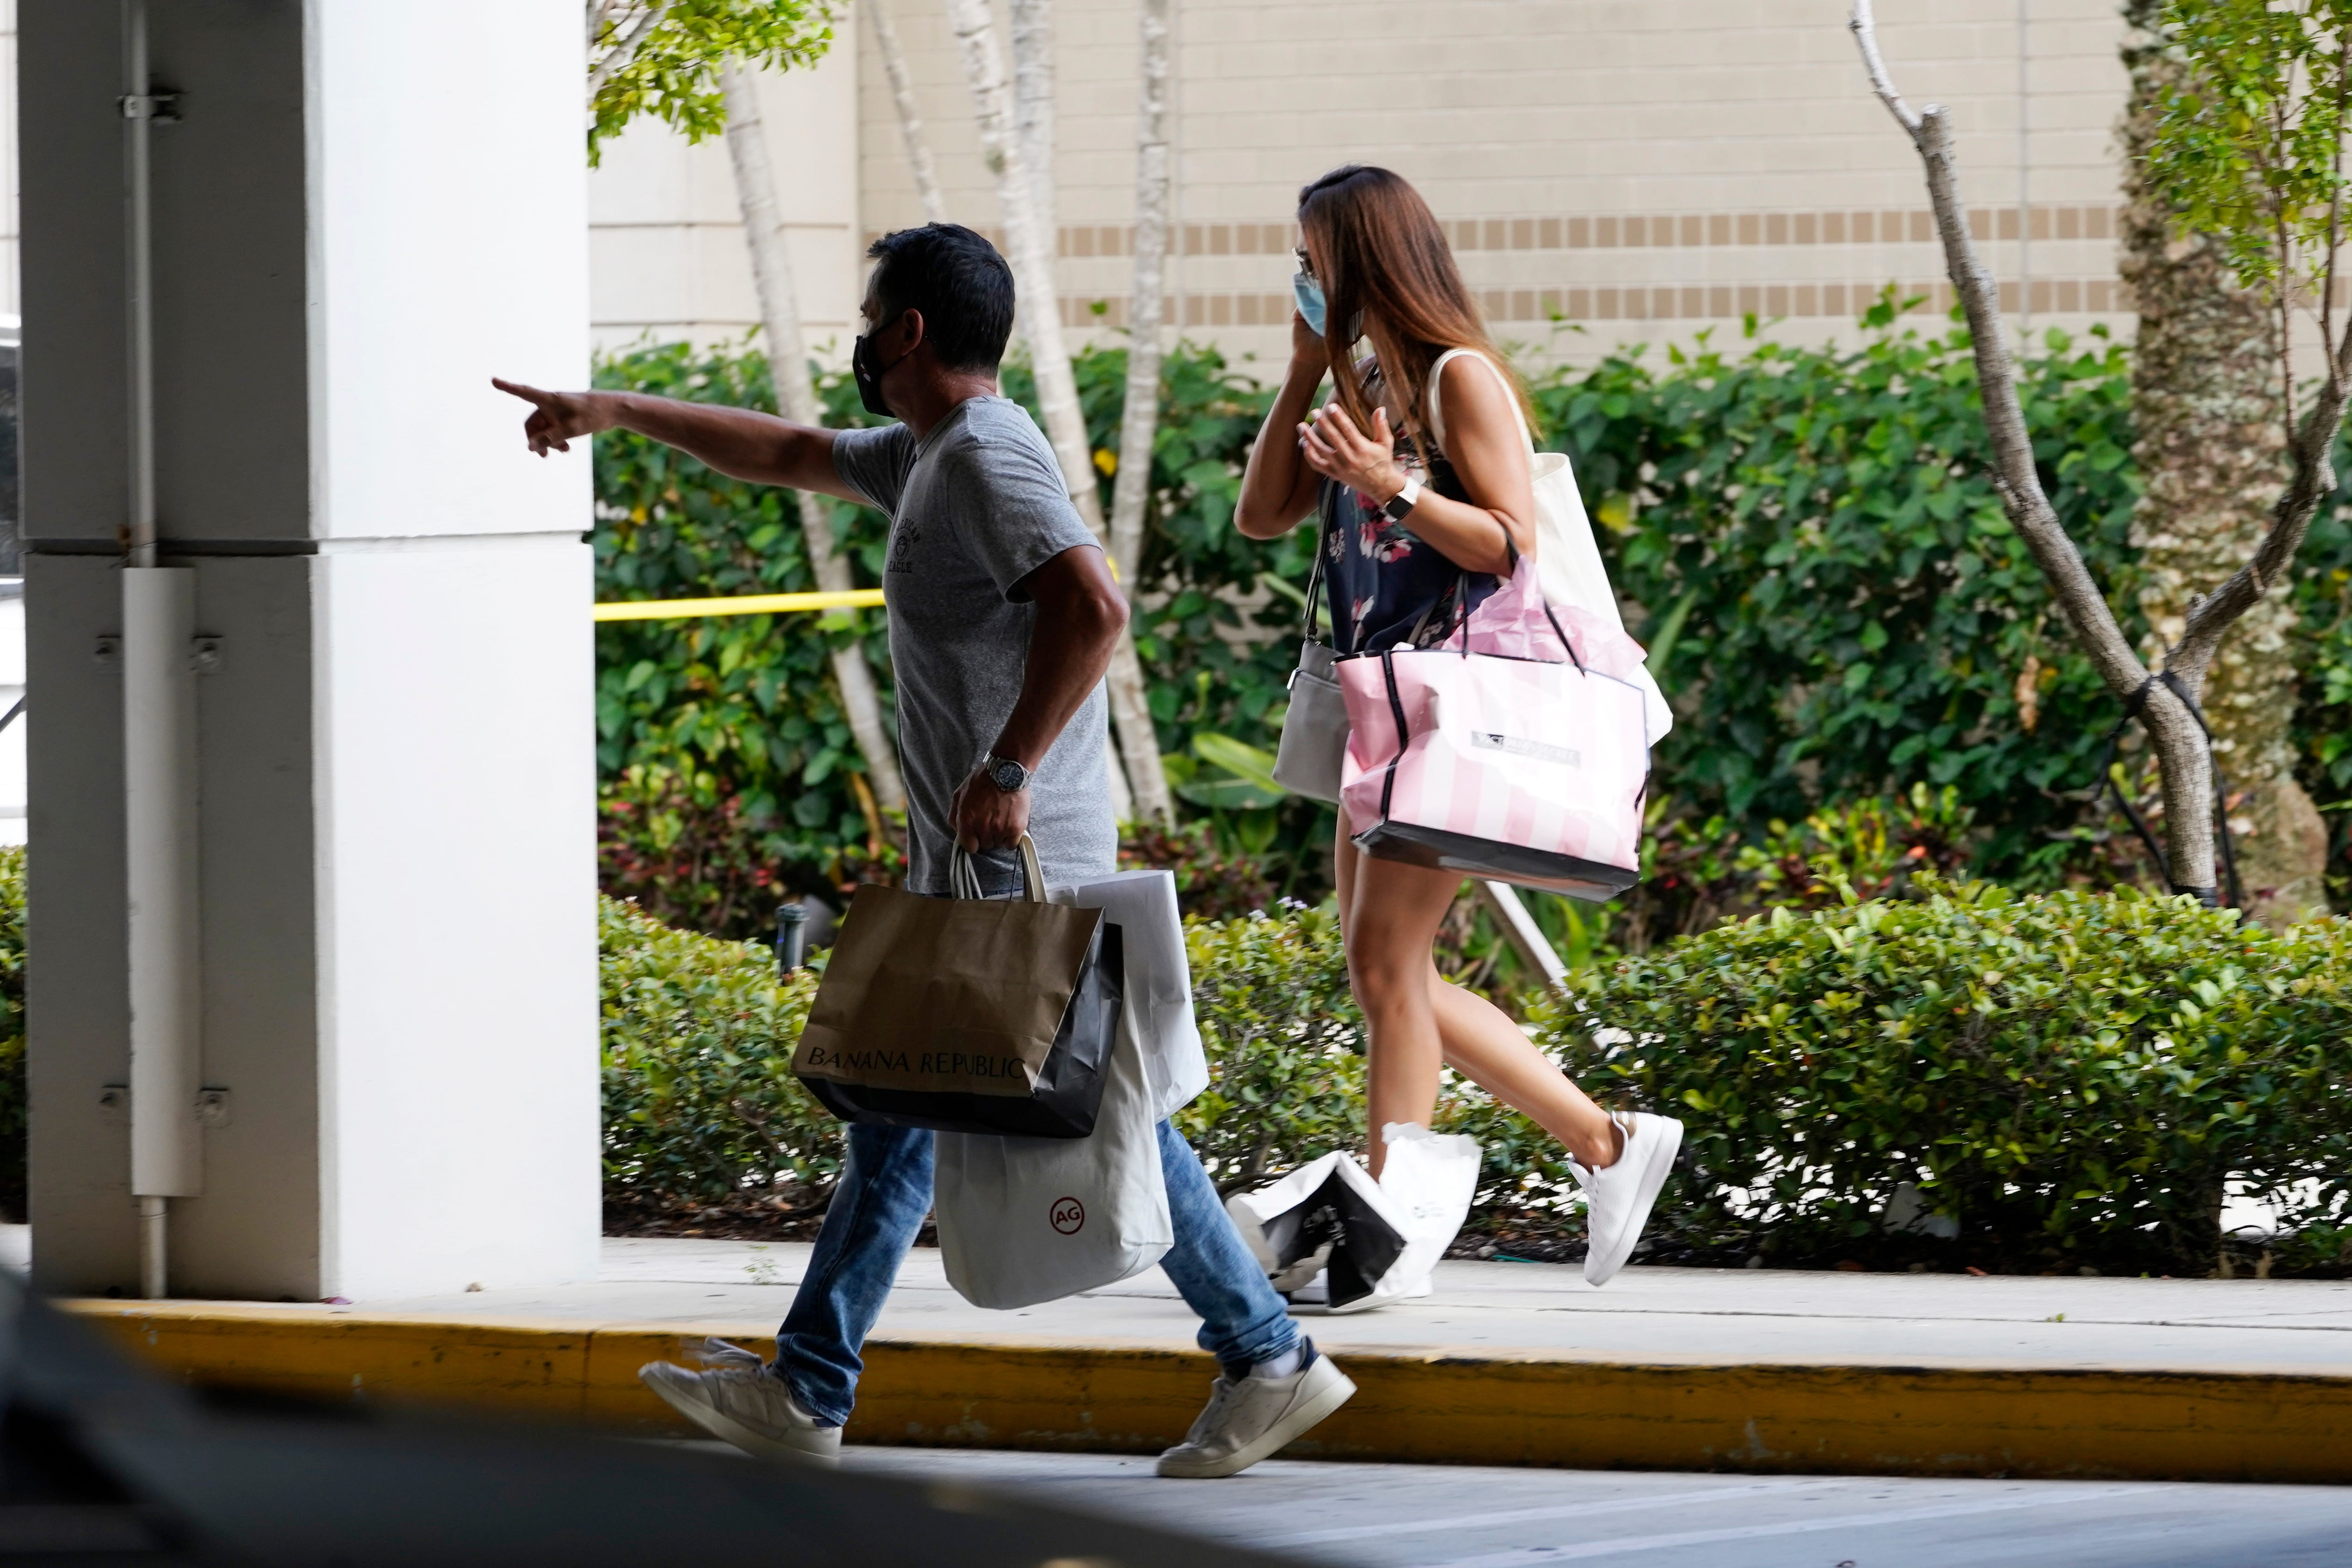 Police: 3 hurt in Florida mall shooting as shoppers scatter 2